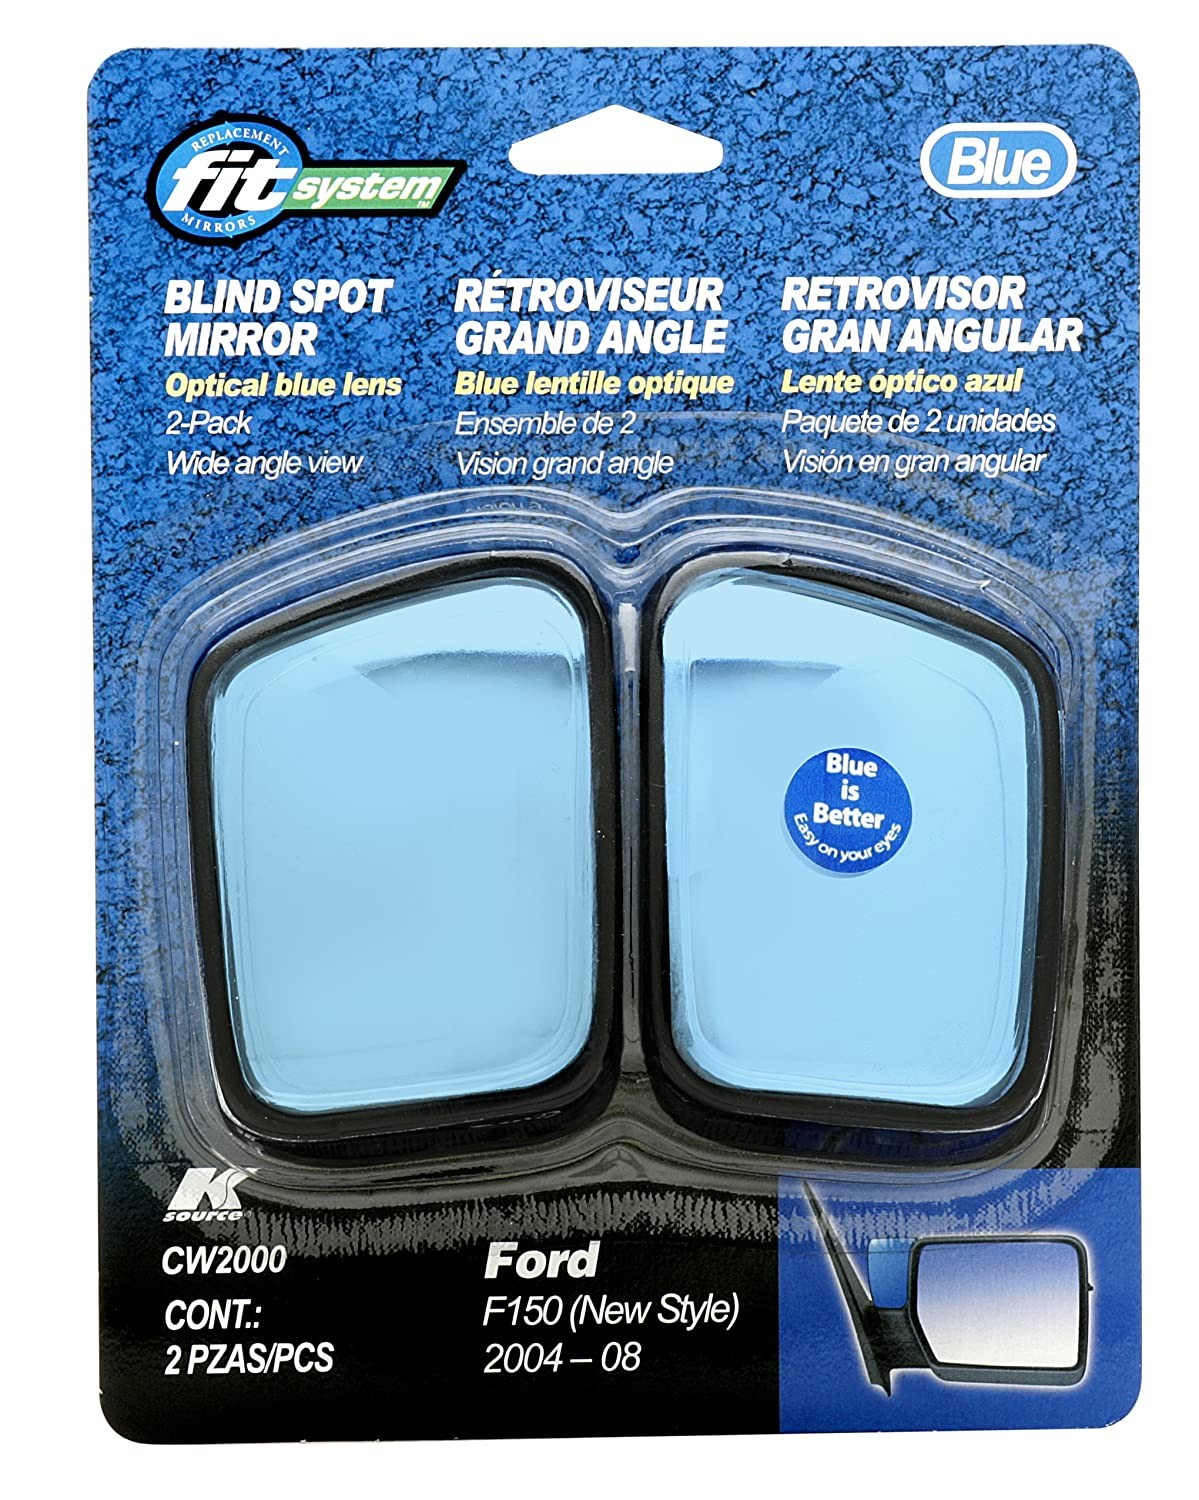 Fit System CW2000 Custom Spot Mirror with Optical Blue Lens, Pair